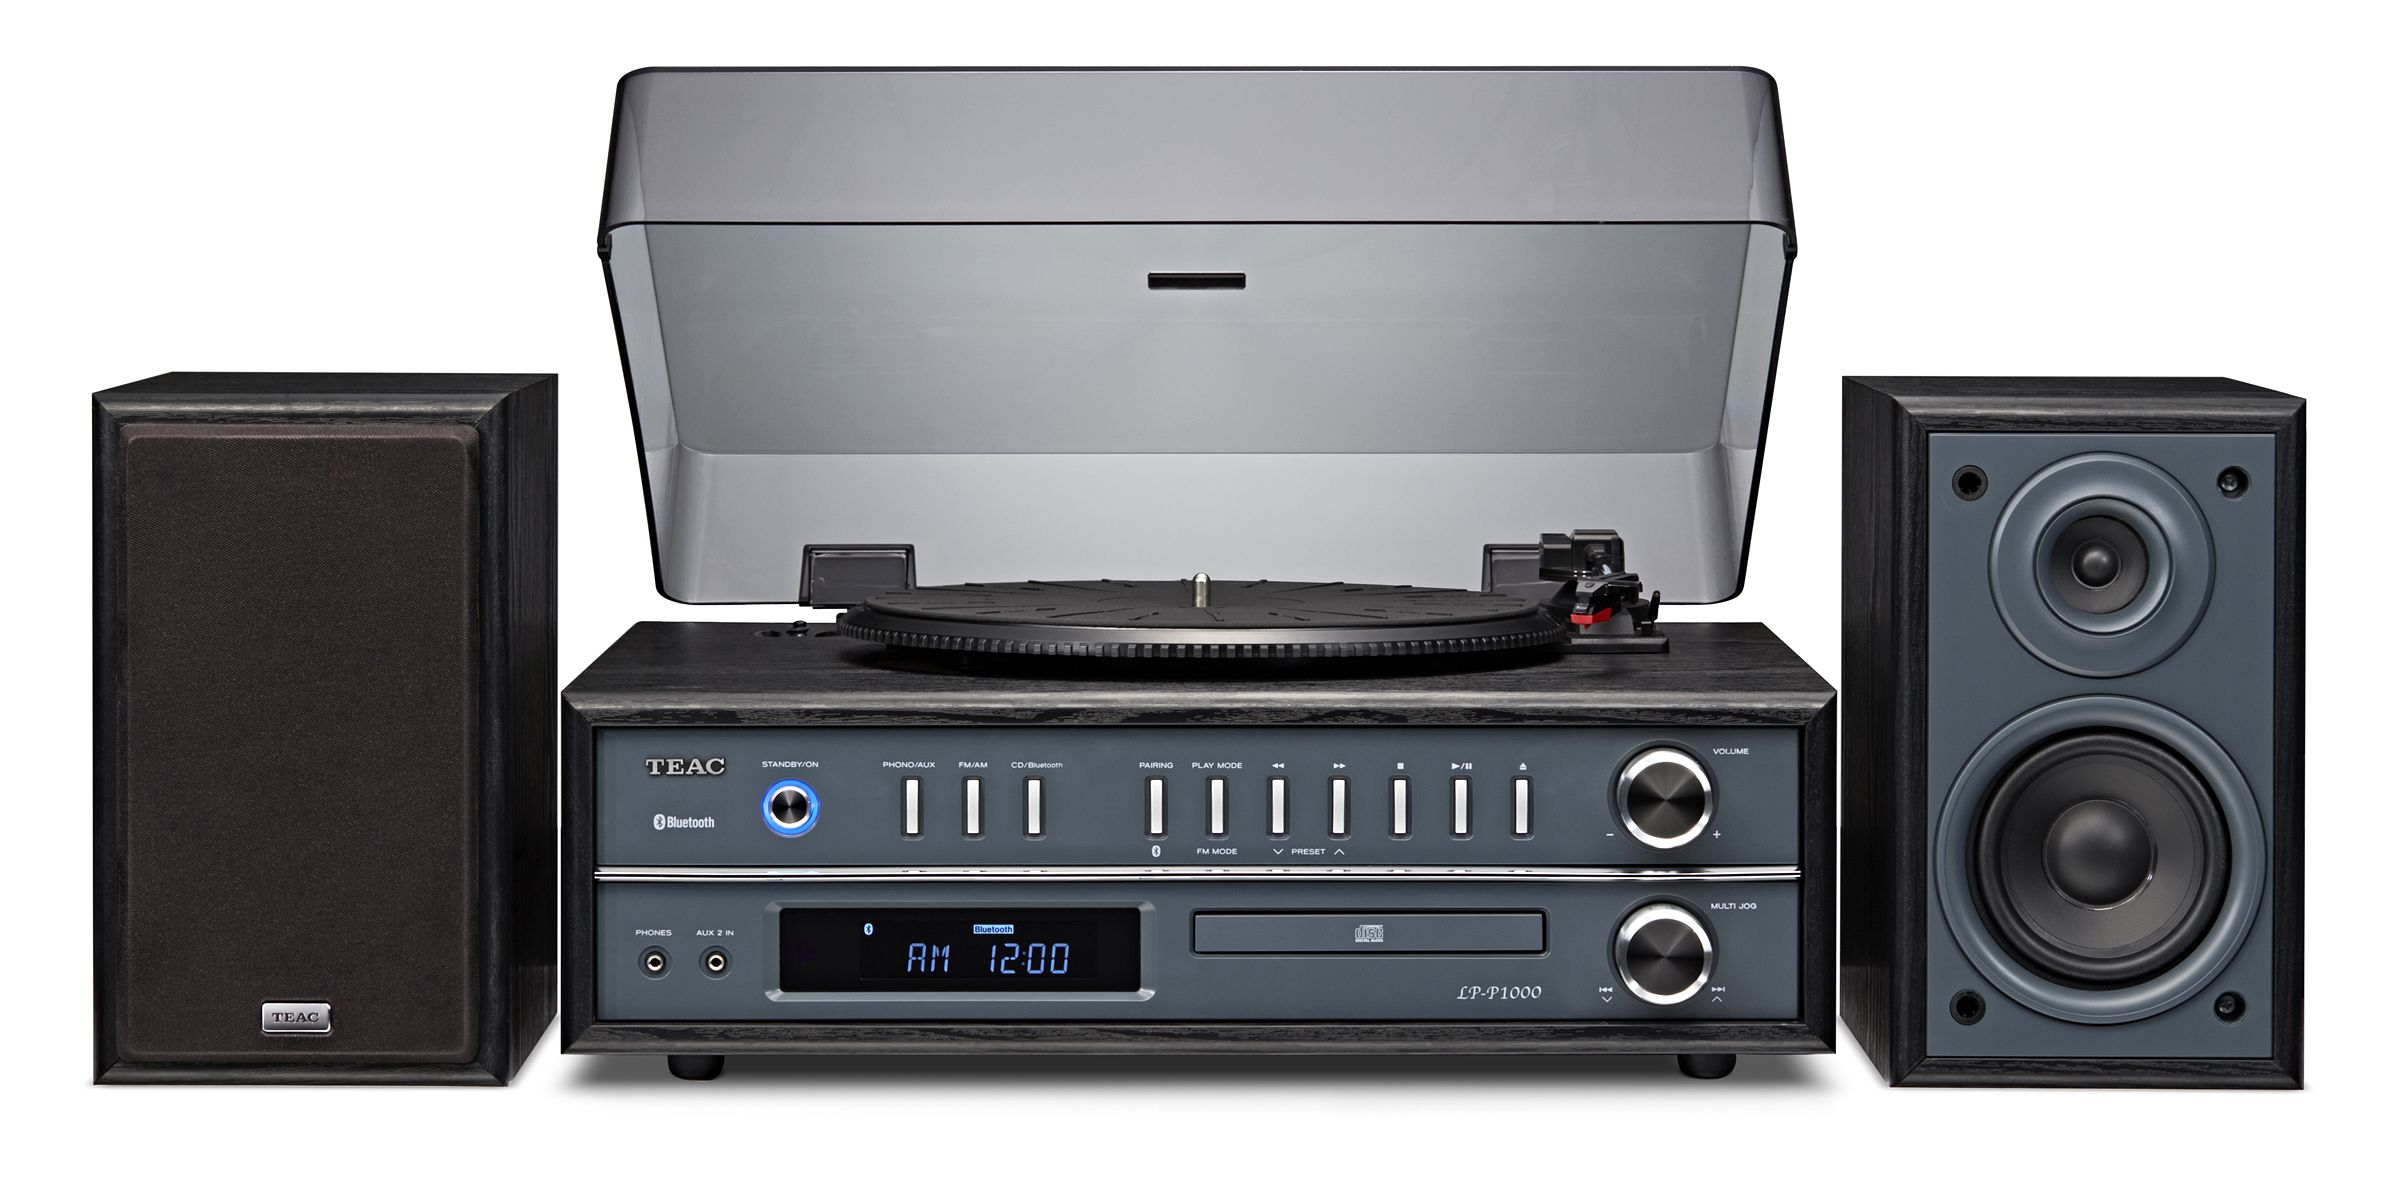 Teac LP P1000 Turntable Stereo System with Bluetooth® in a